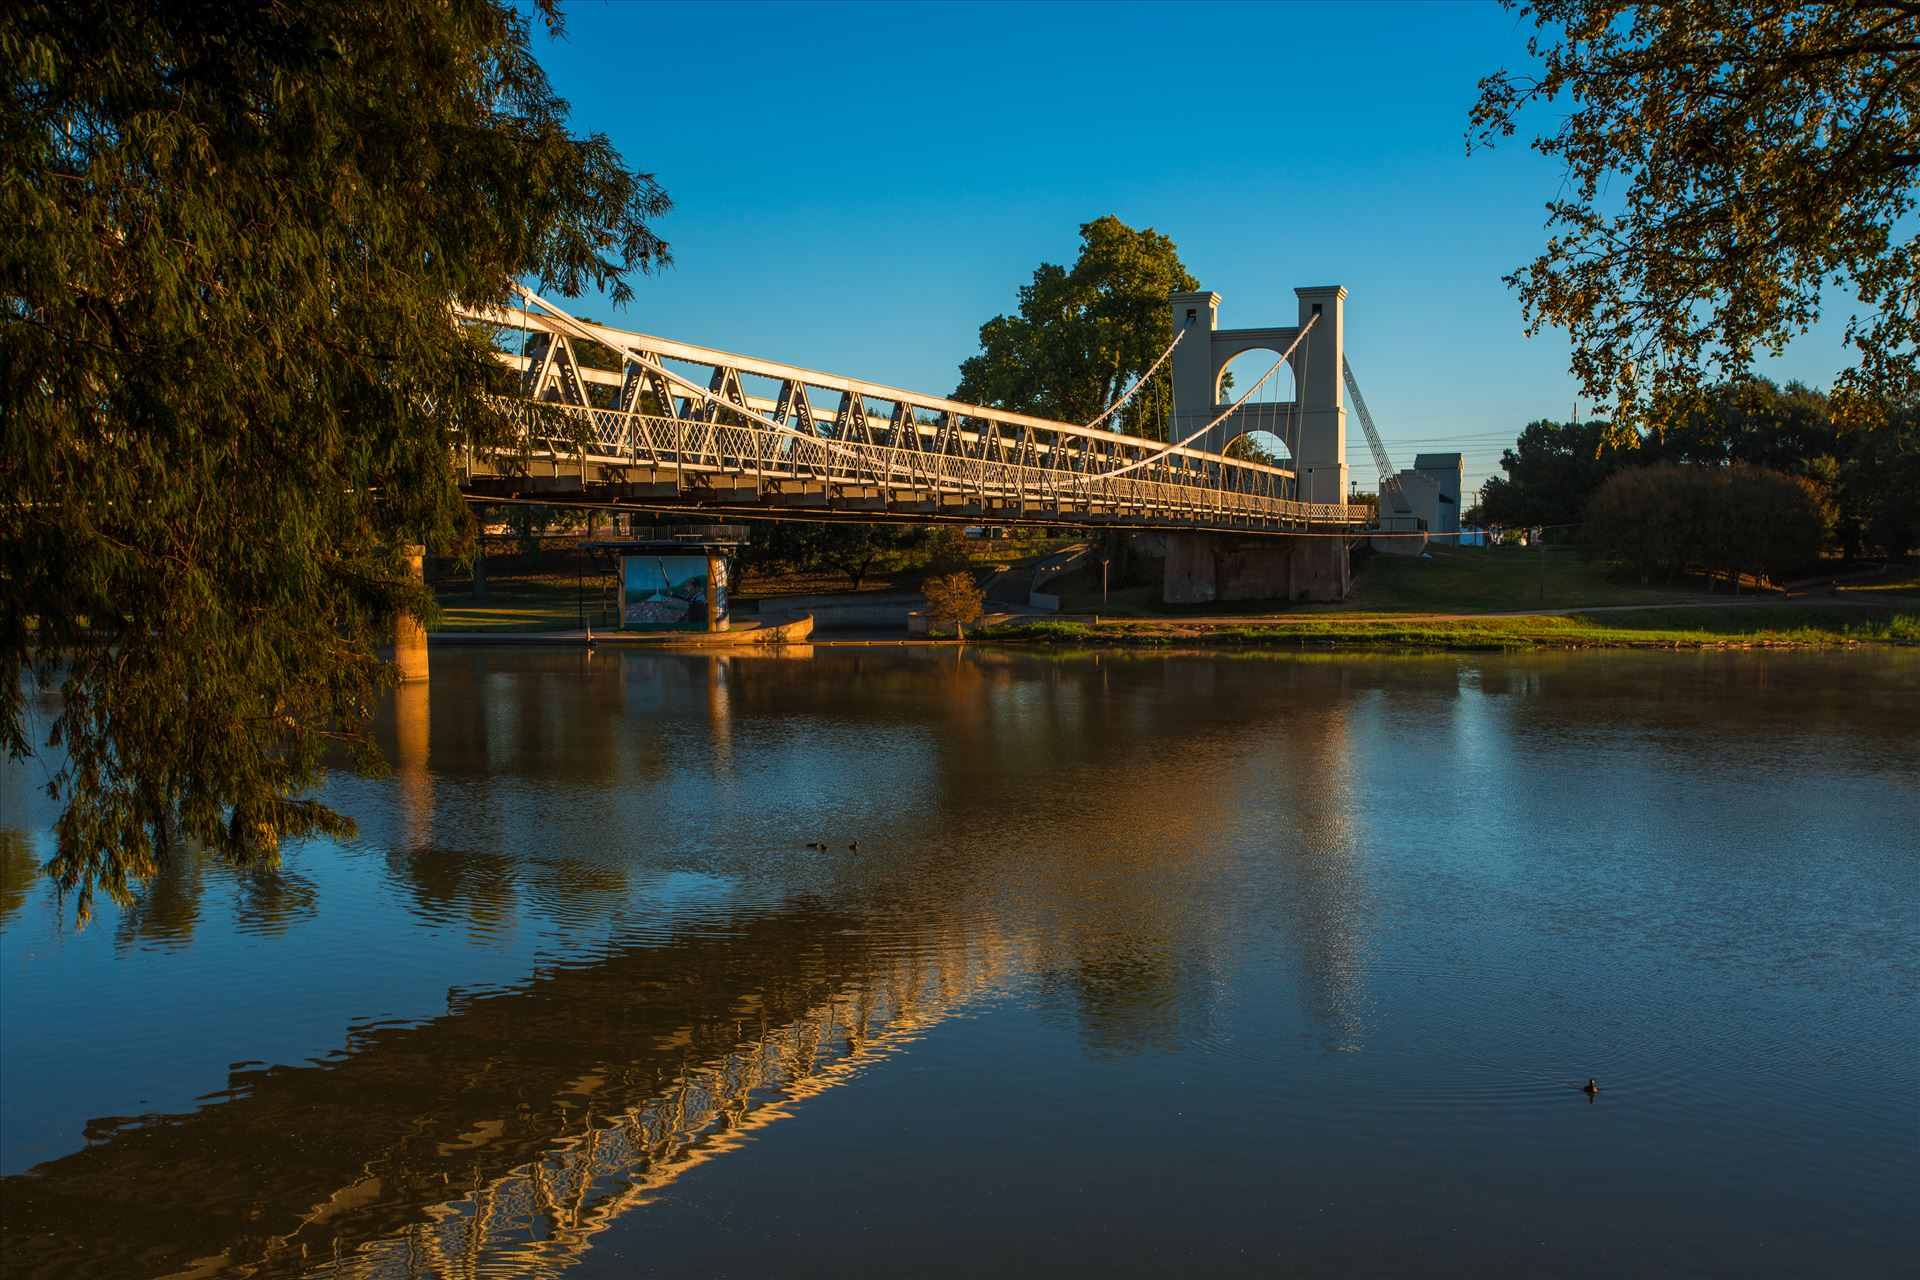 20171017_SuspensionBridge_026.jpg